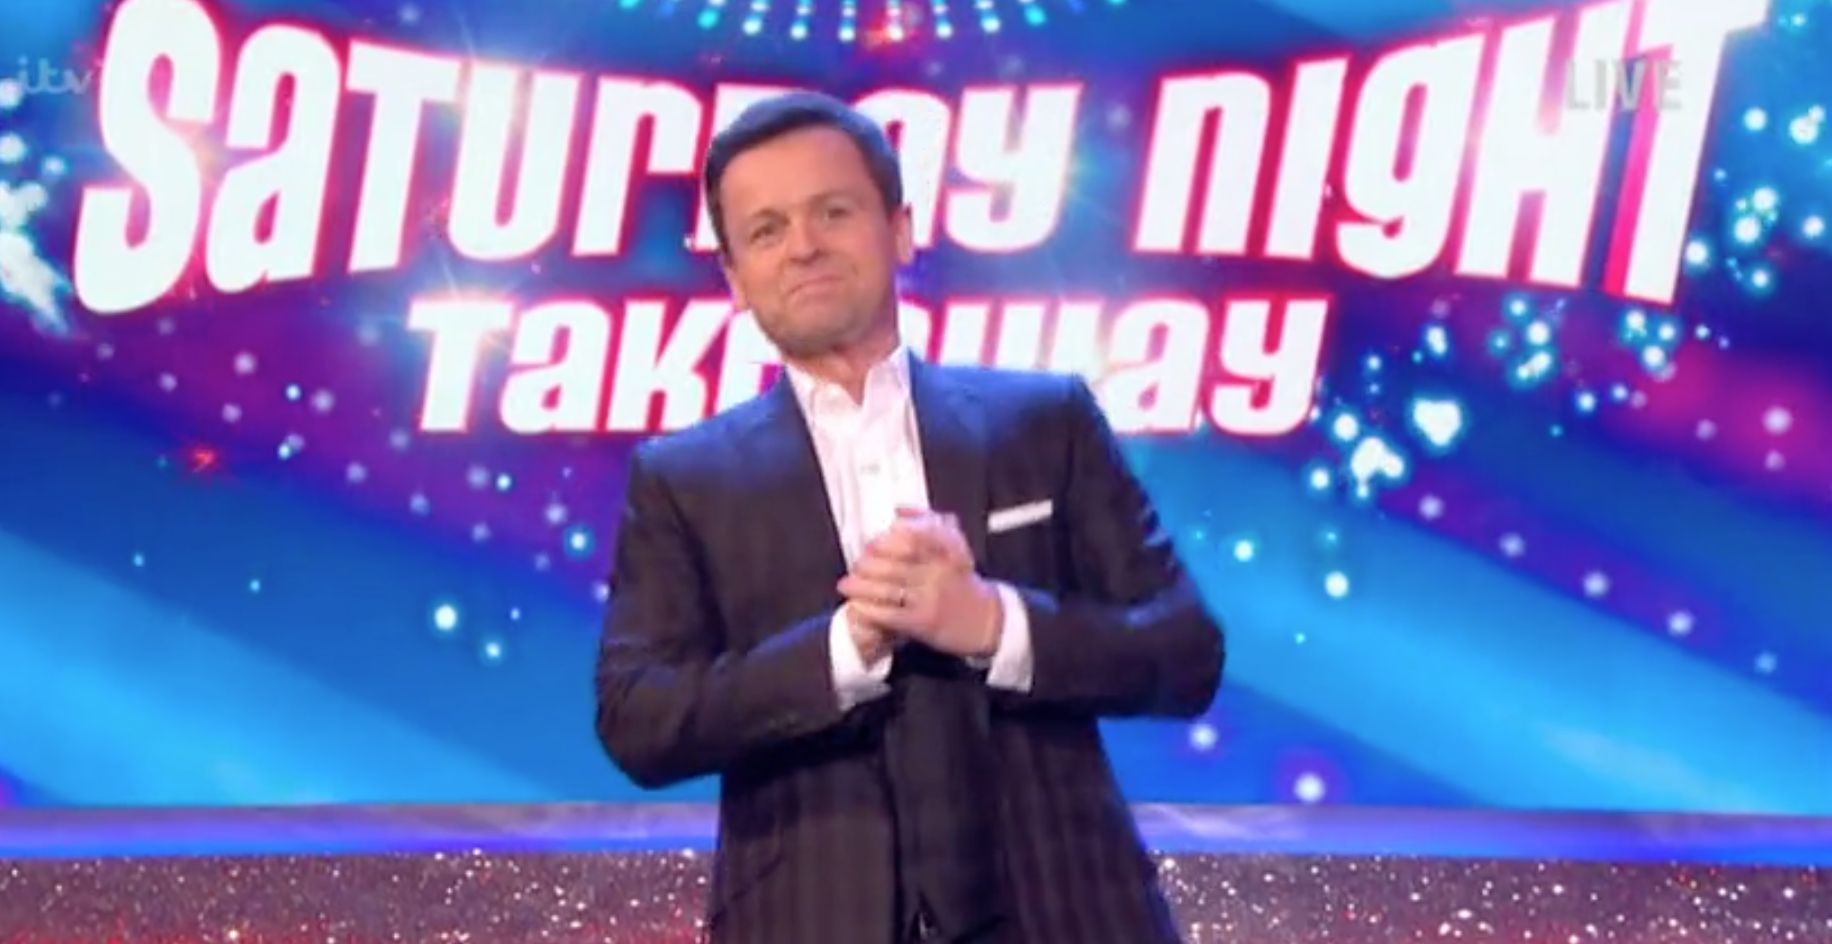 Dec Donnelly addresses Ant's absence from Saturday Night Takeaway